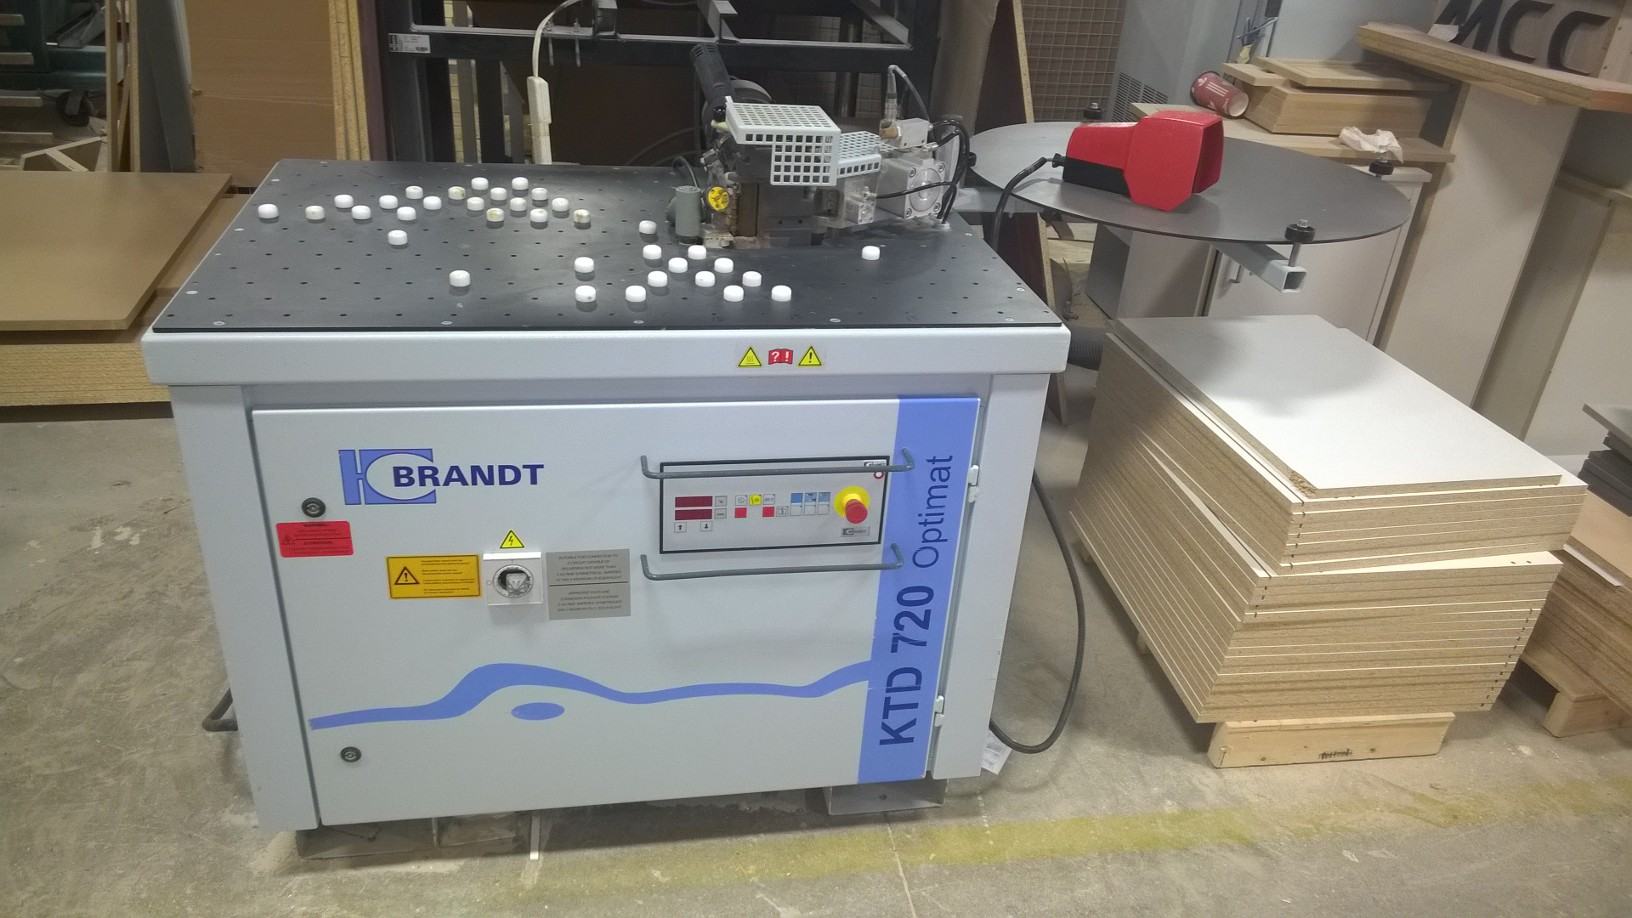 Brandt KTD 720 Optimat, 2011